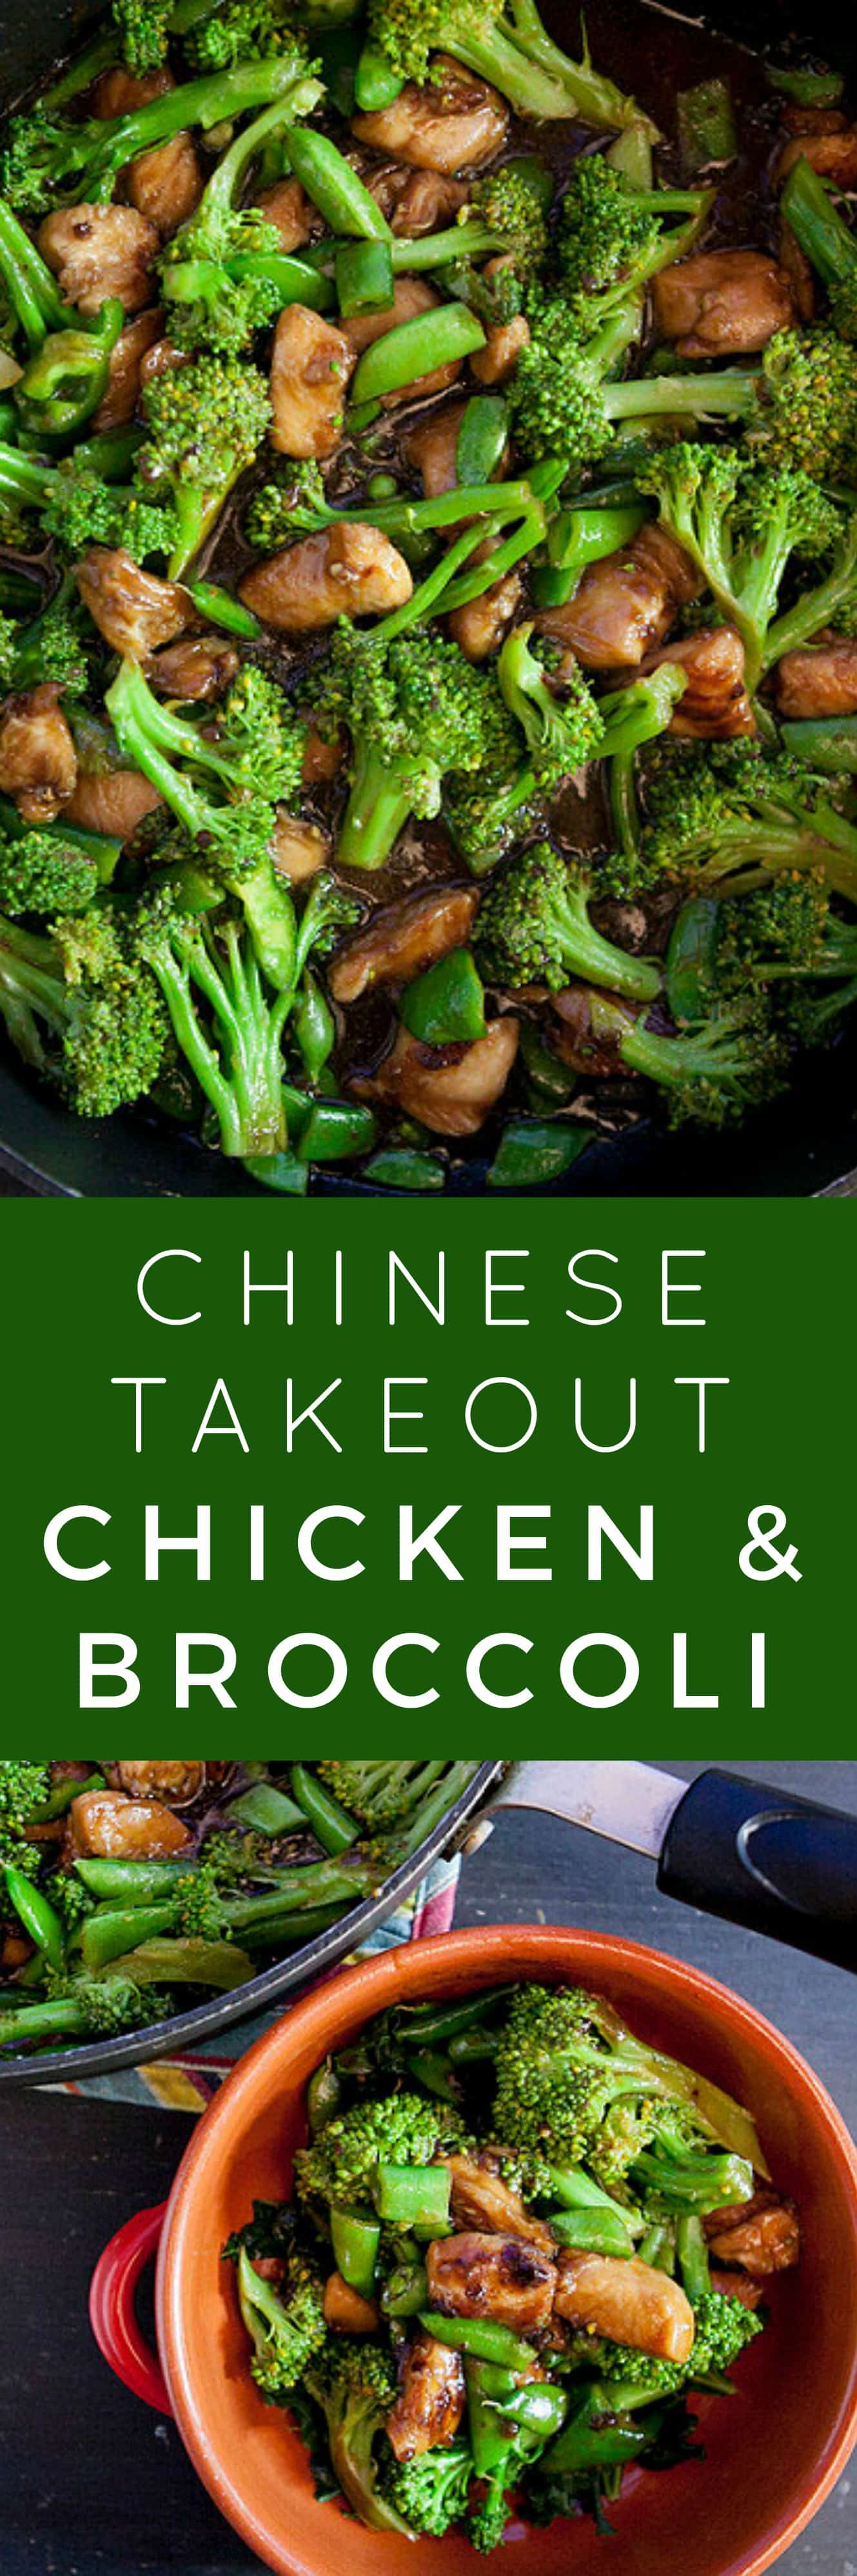 Chinese Chicken And Broccoli - Brooklyn Farm Girl-8042